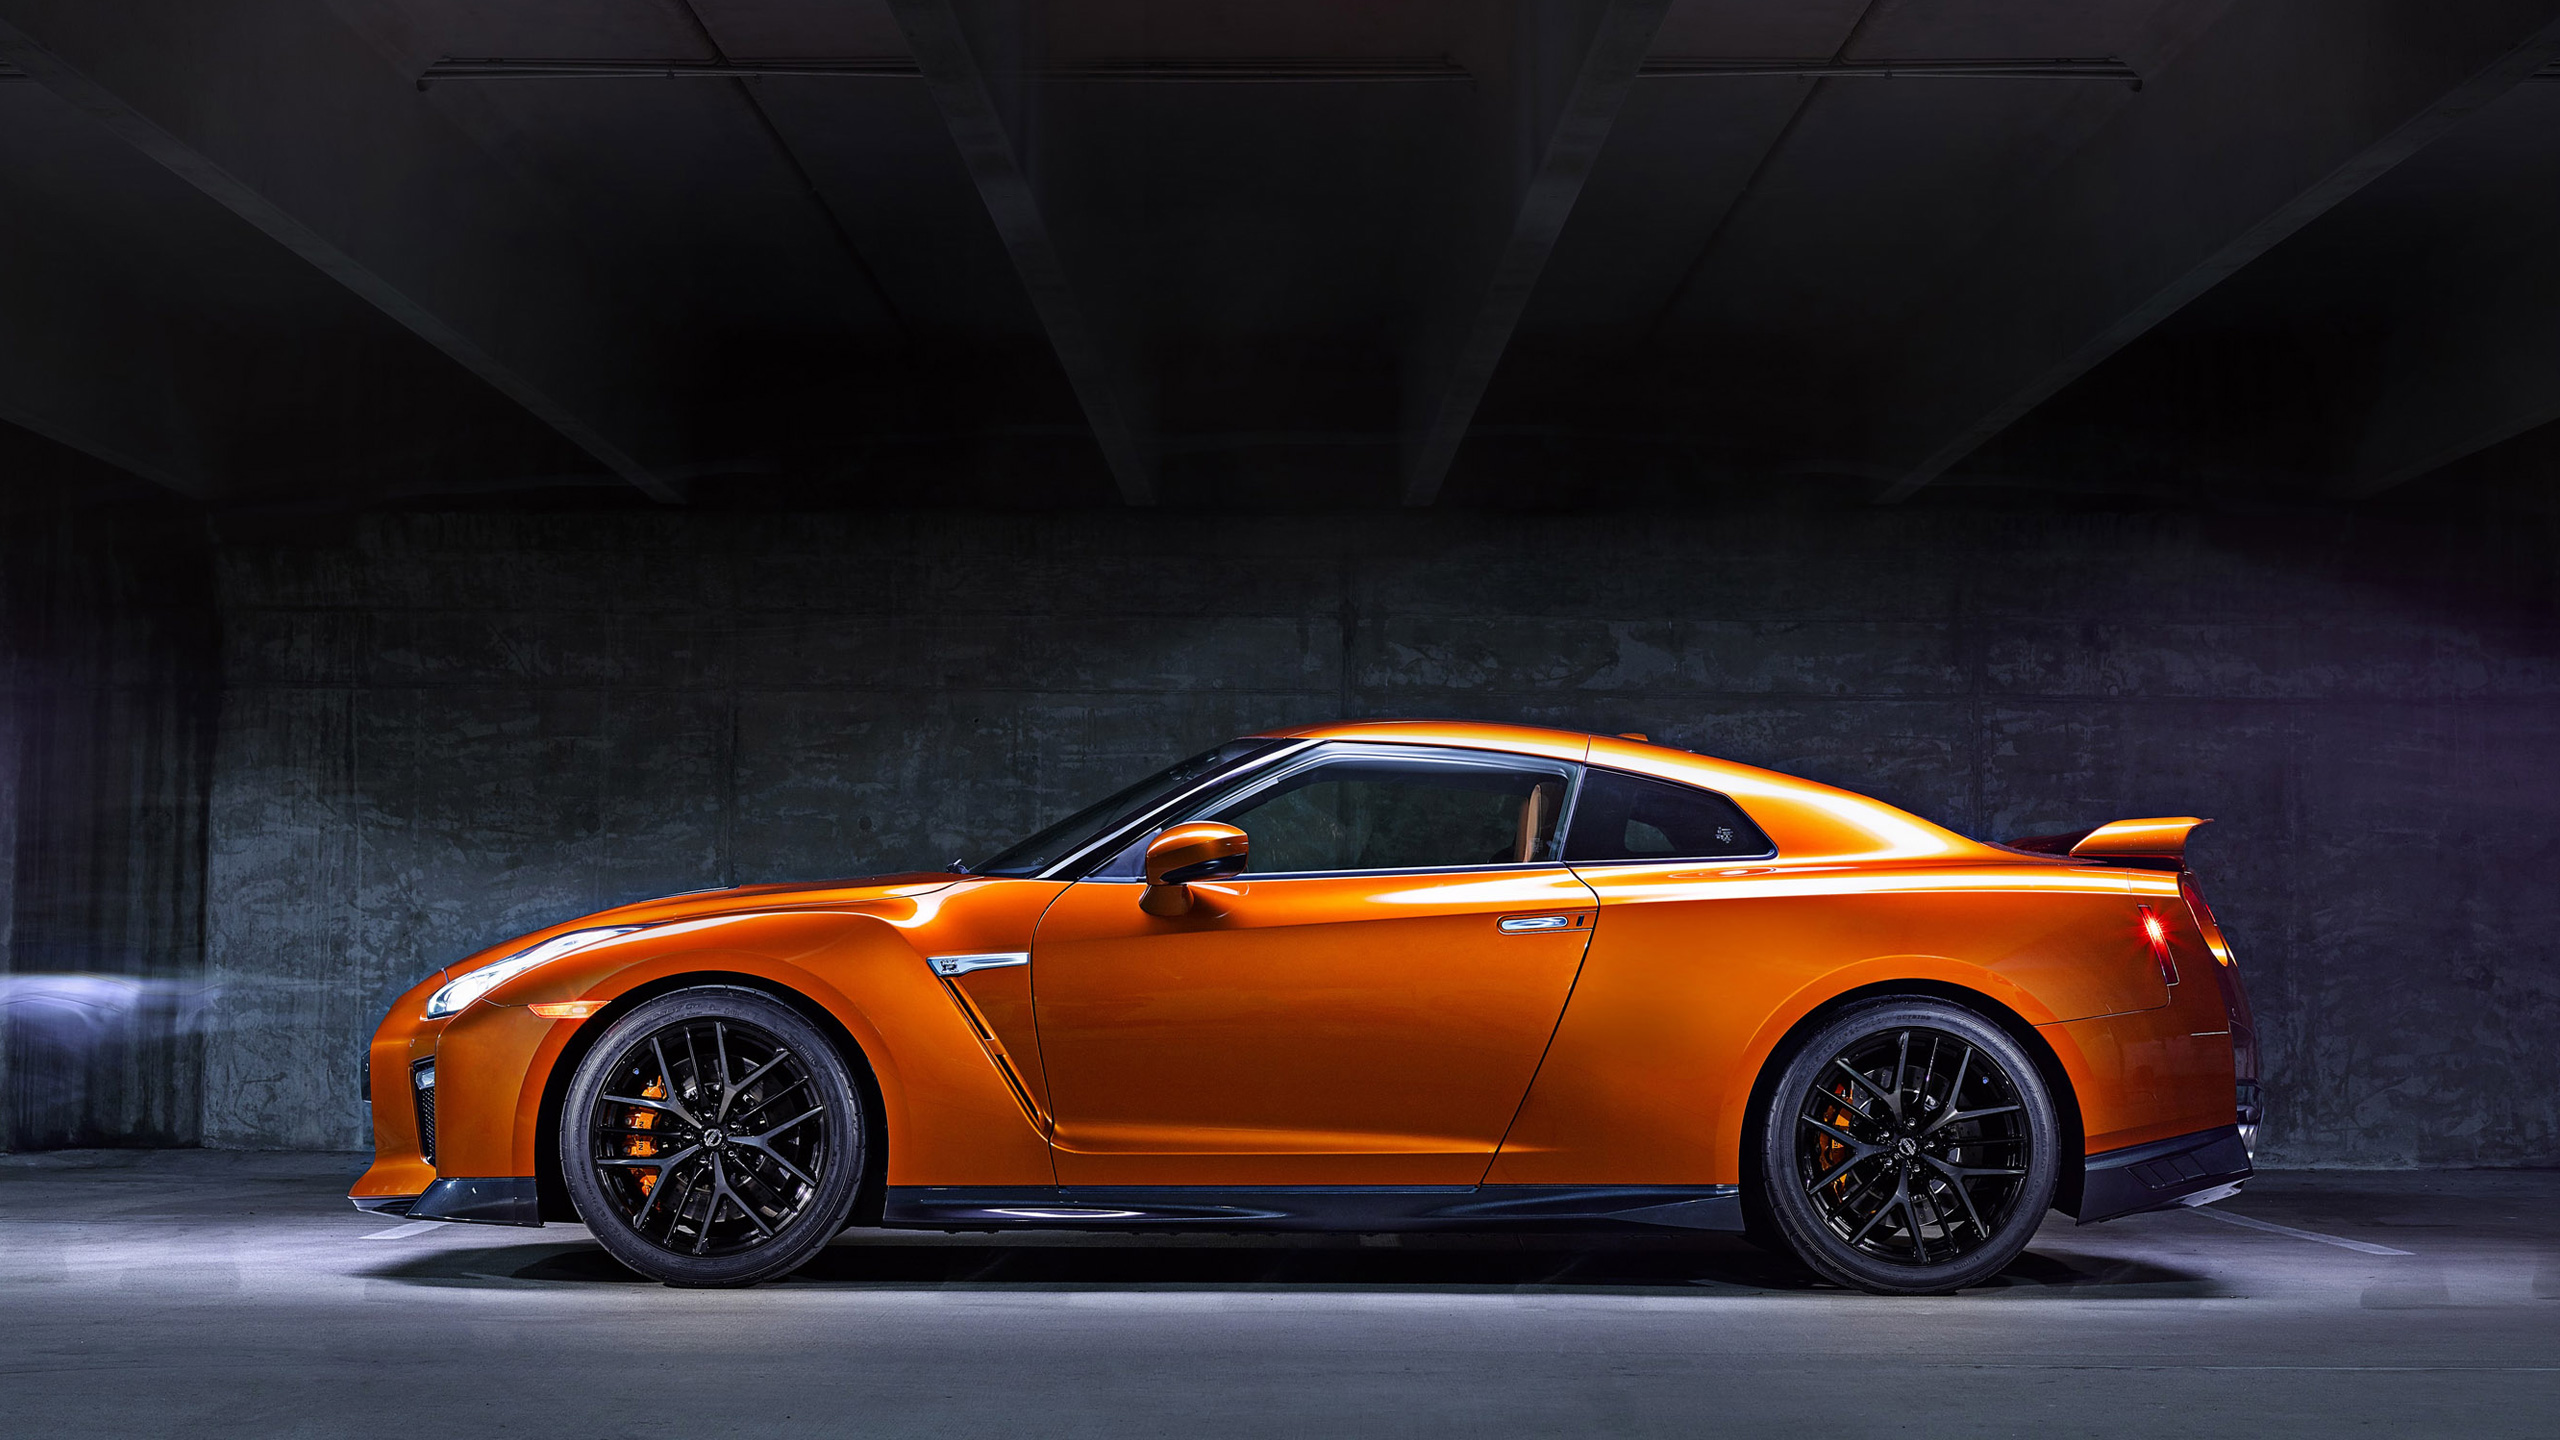 Nissan gtr wallpapers high resolution and quality download 2560x1440 voltagebd Choice Image